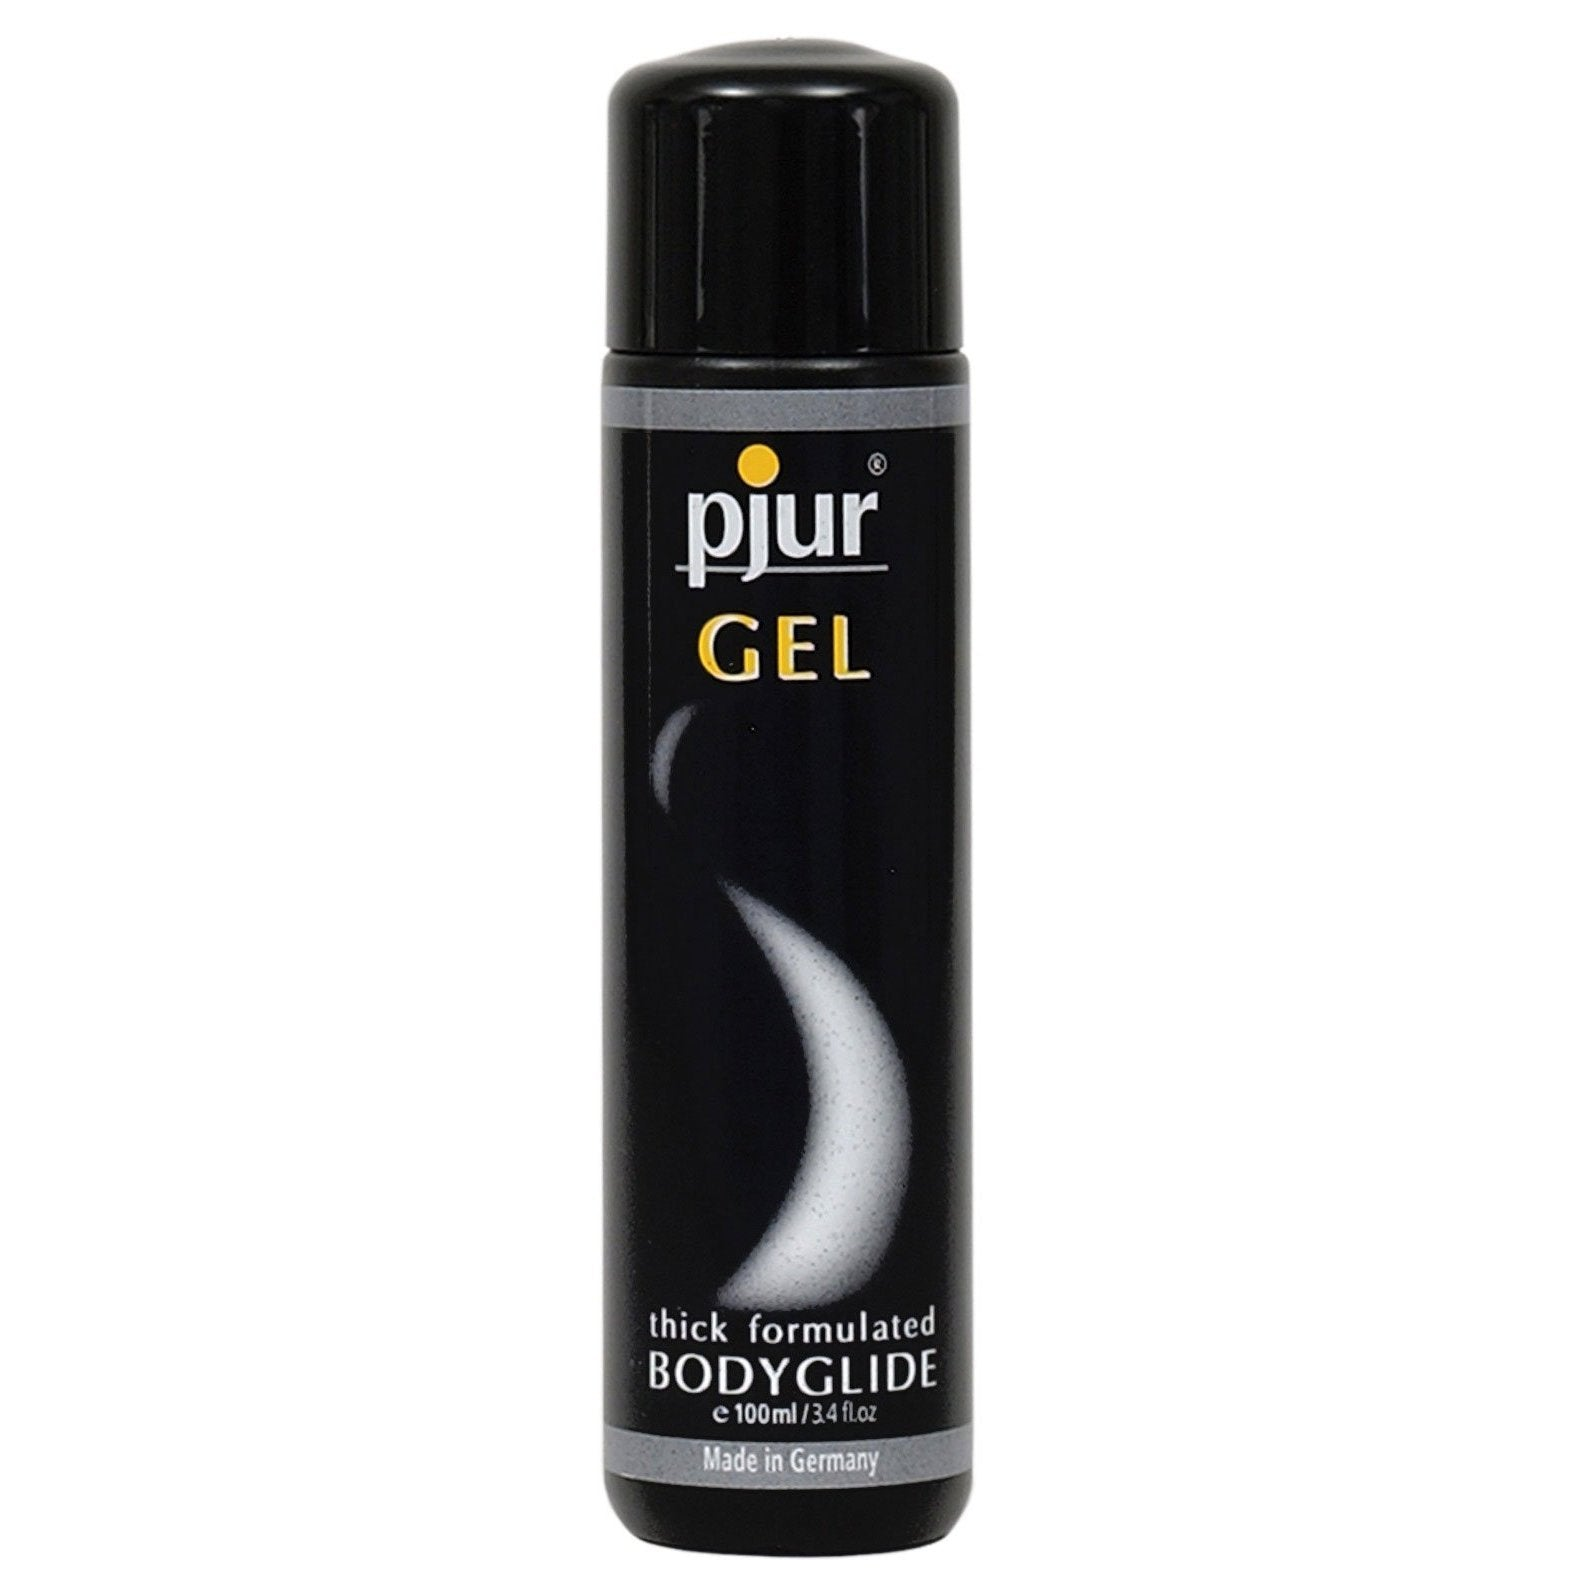 Pjur Original Gel Personal Lubricant - Gay Men's Sex Toys - Adam's Toy Box